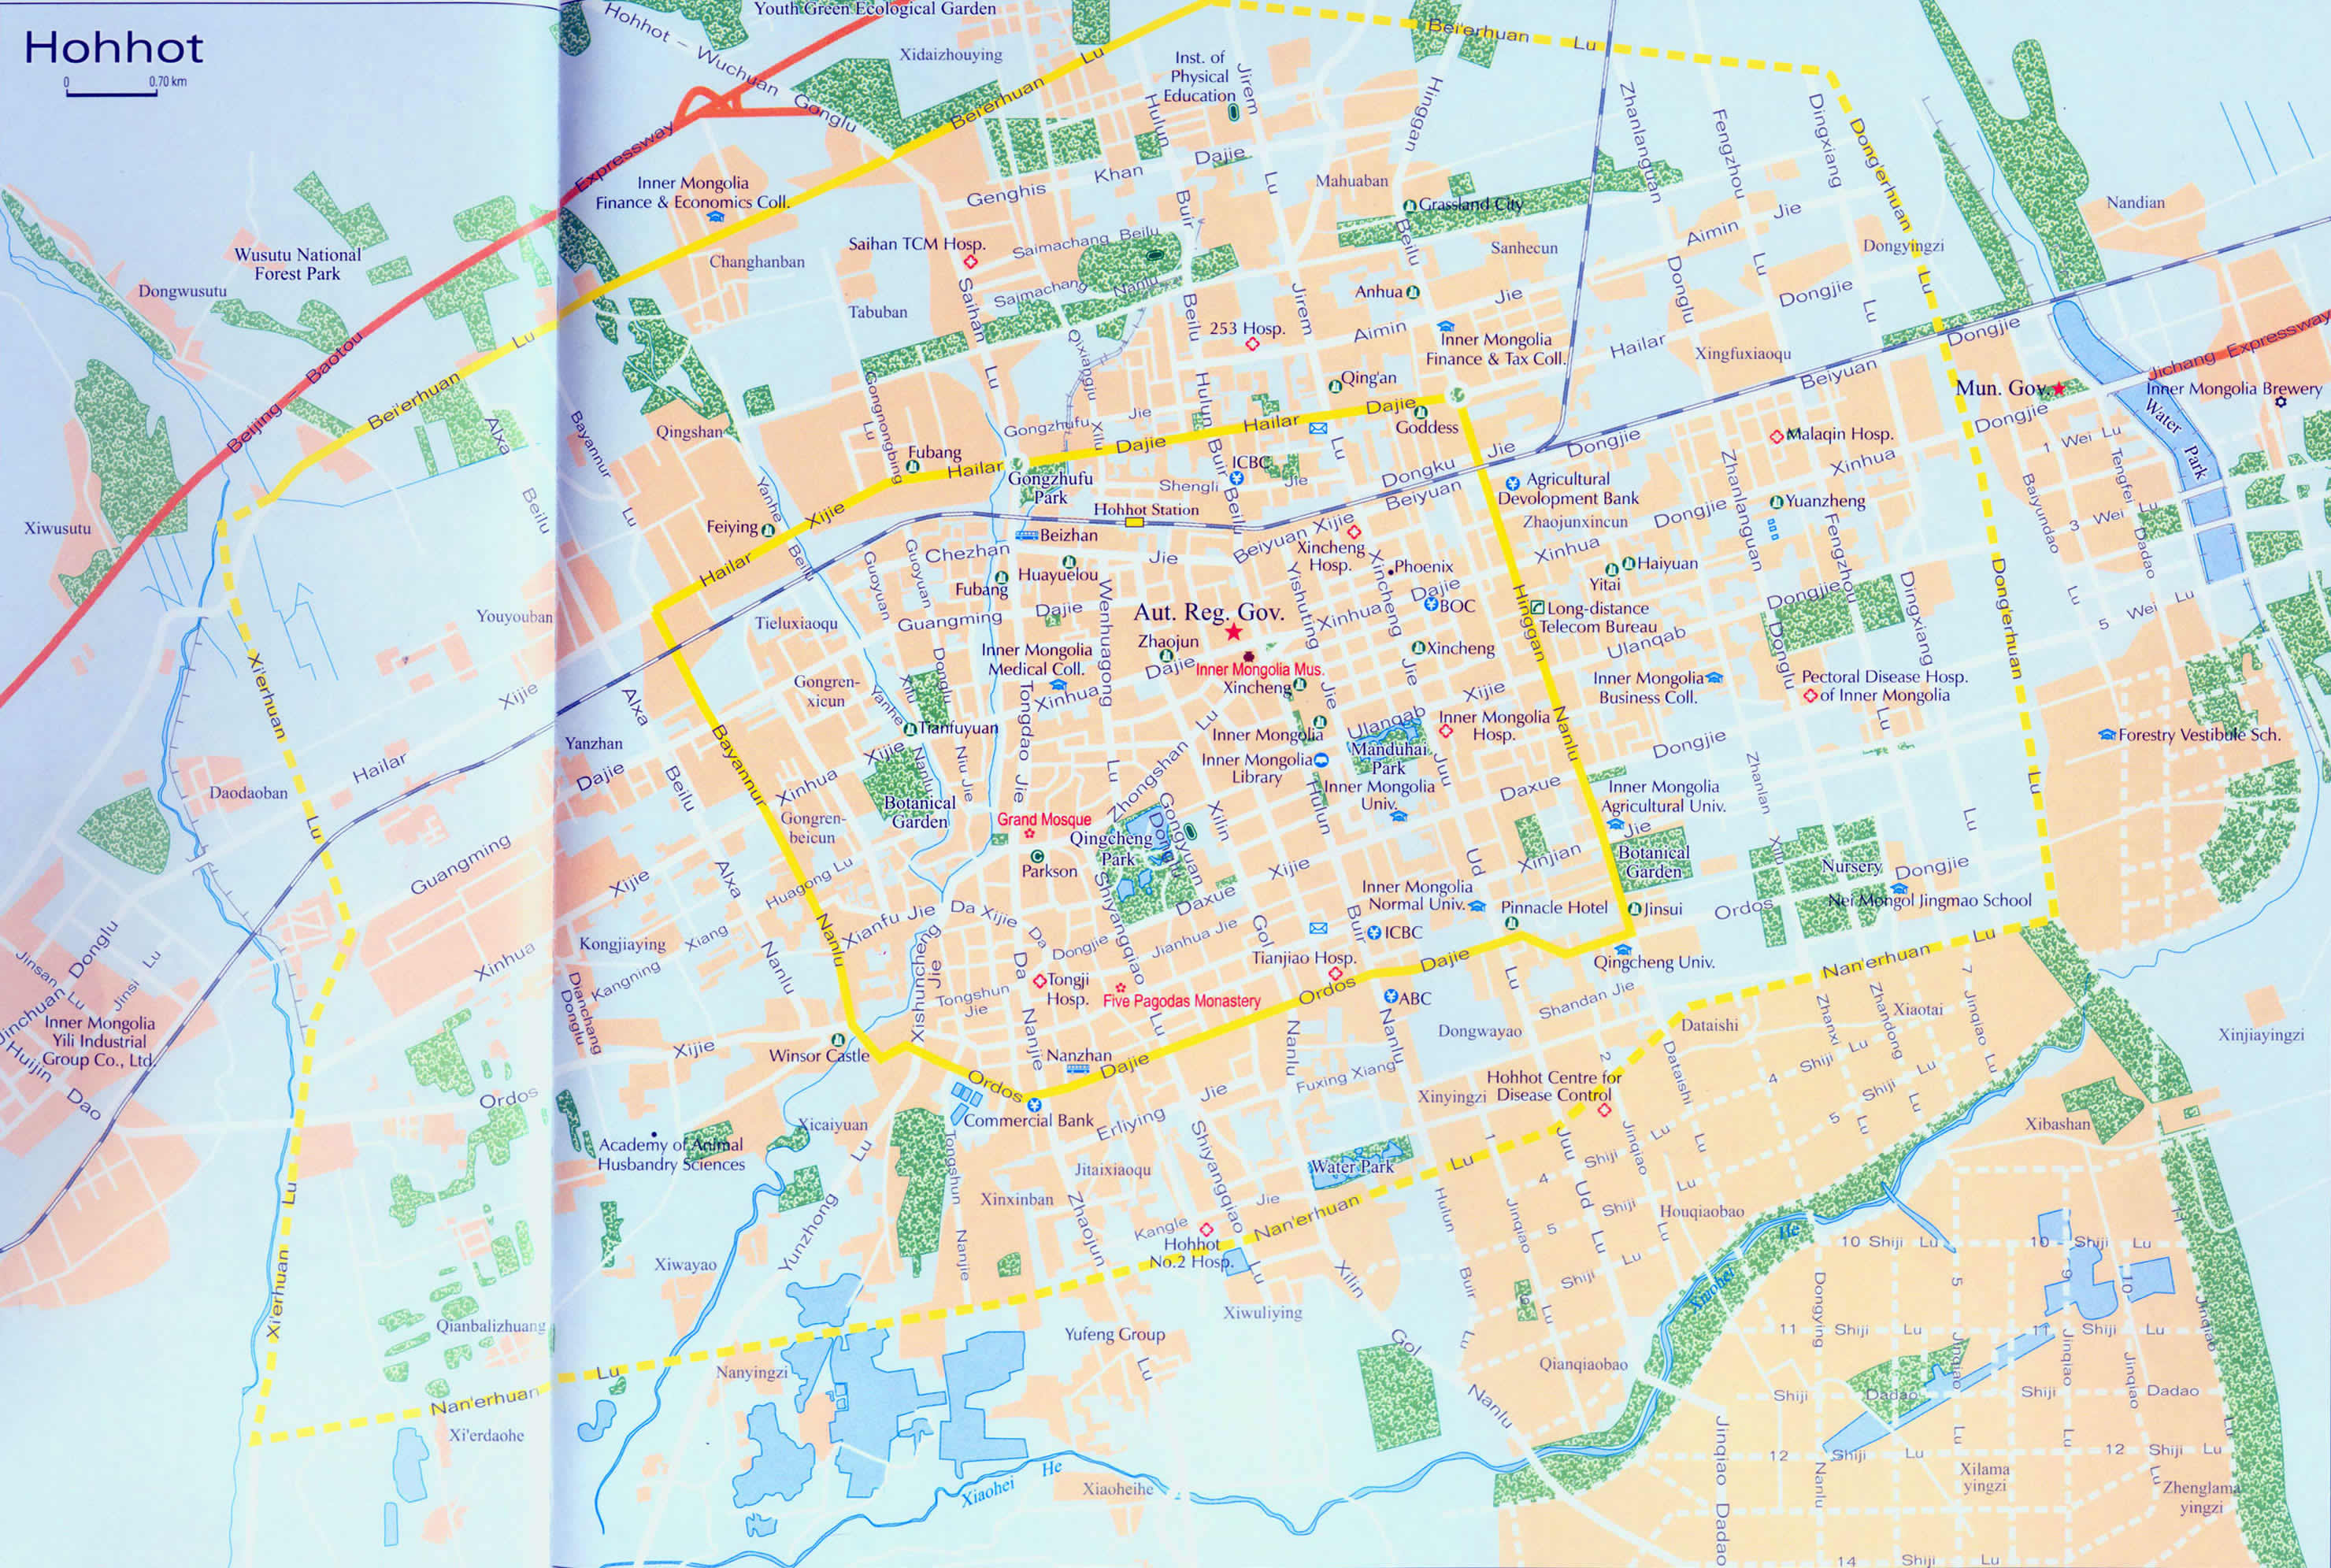 Detailed Hohhot Traffic Map